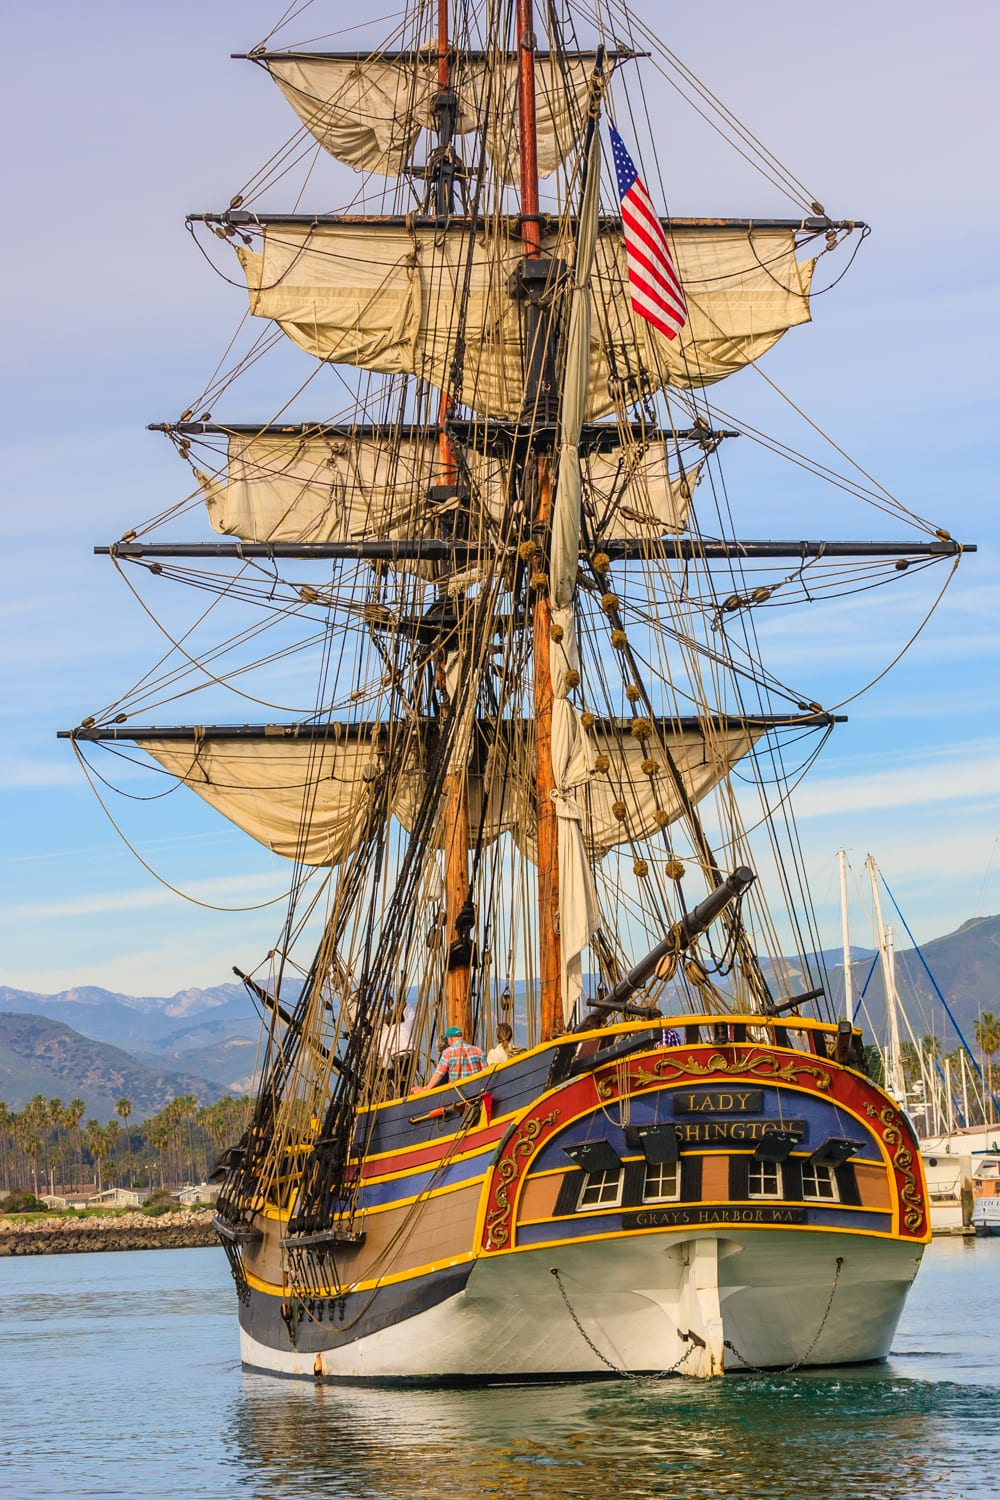 The majestic Lady Washington making the Ventura Harbor its temporary home